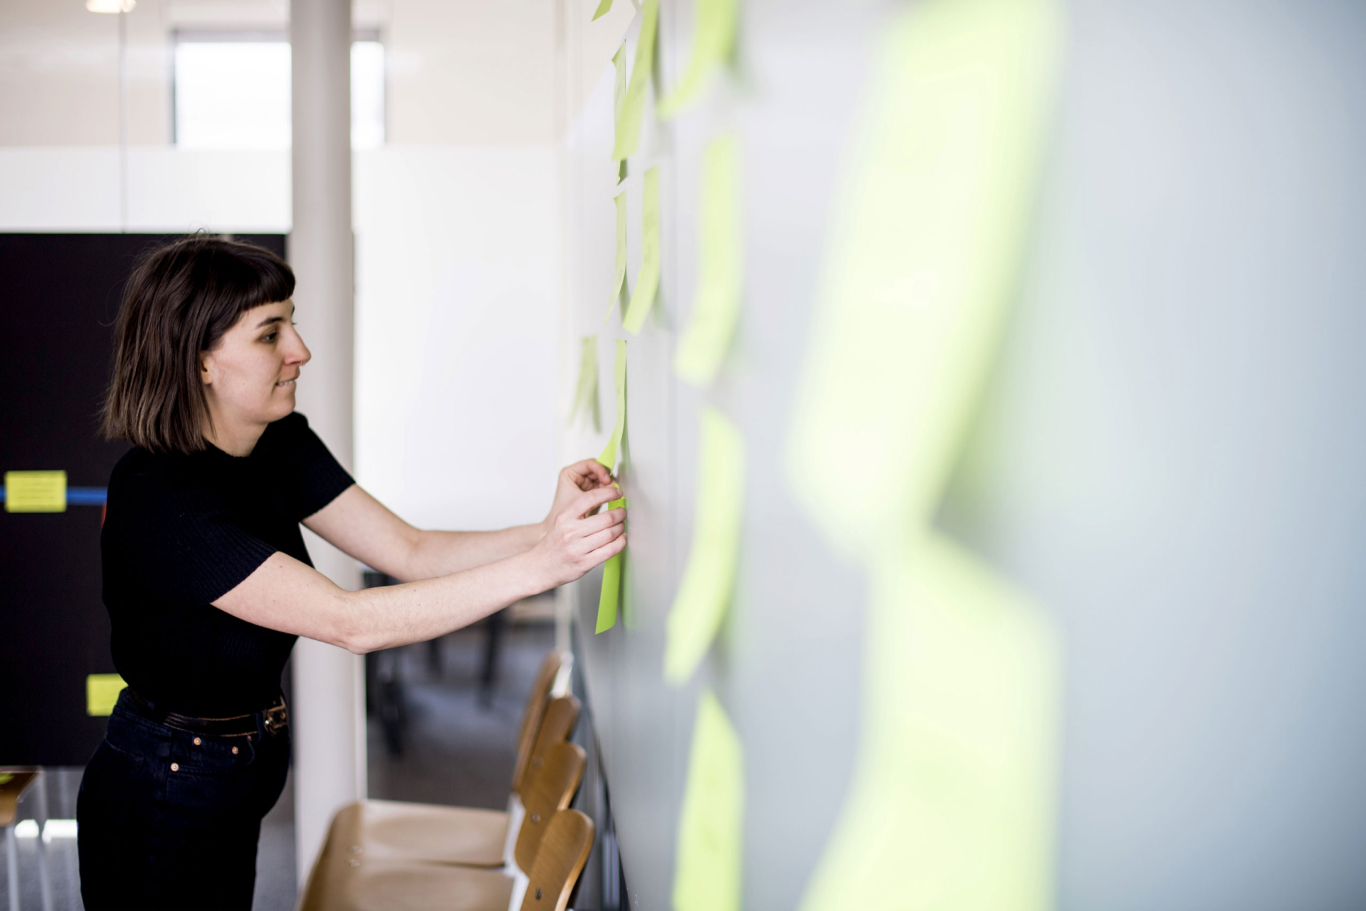 Holly arranges post-it notes in a workshop